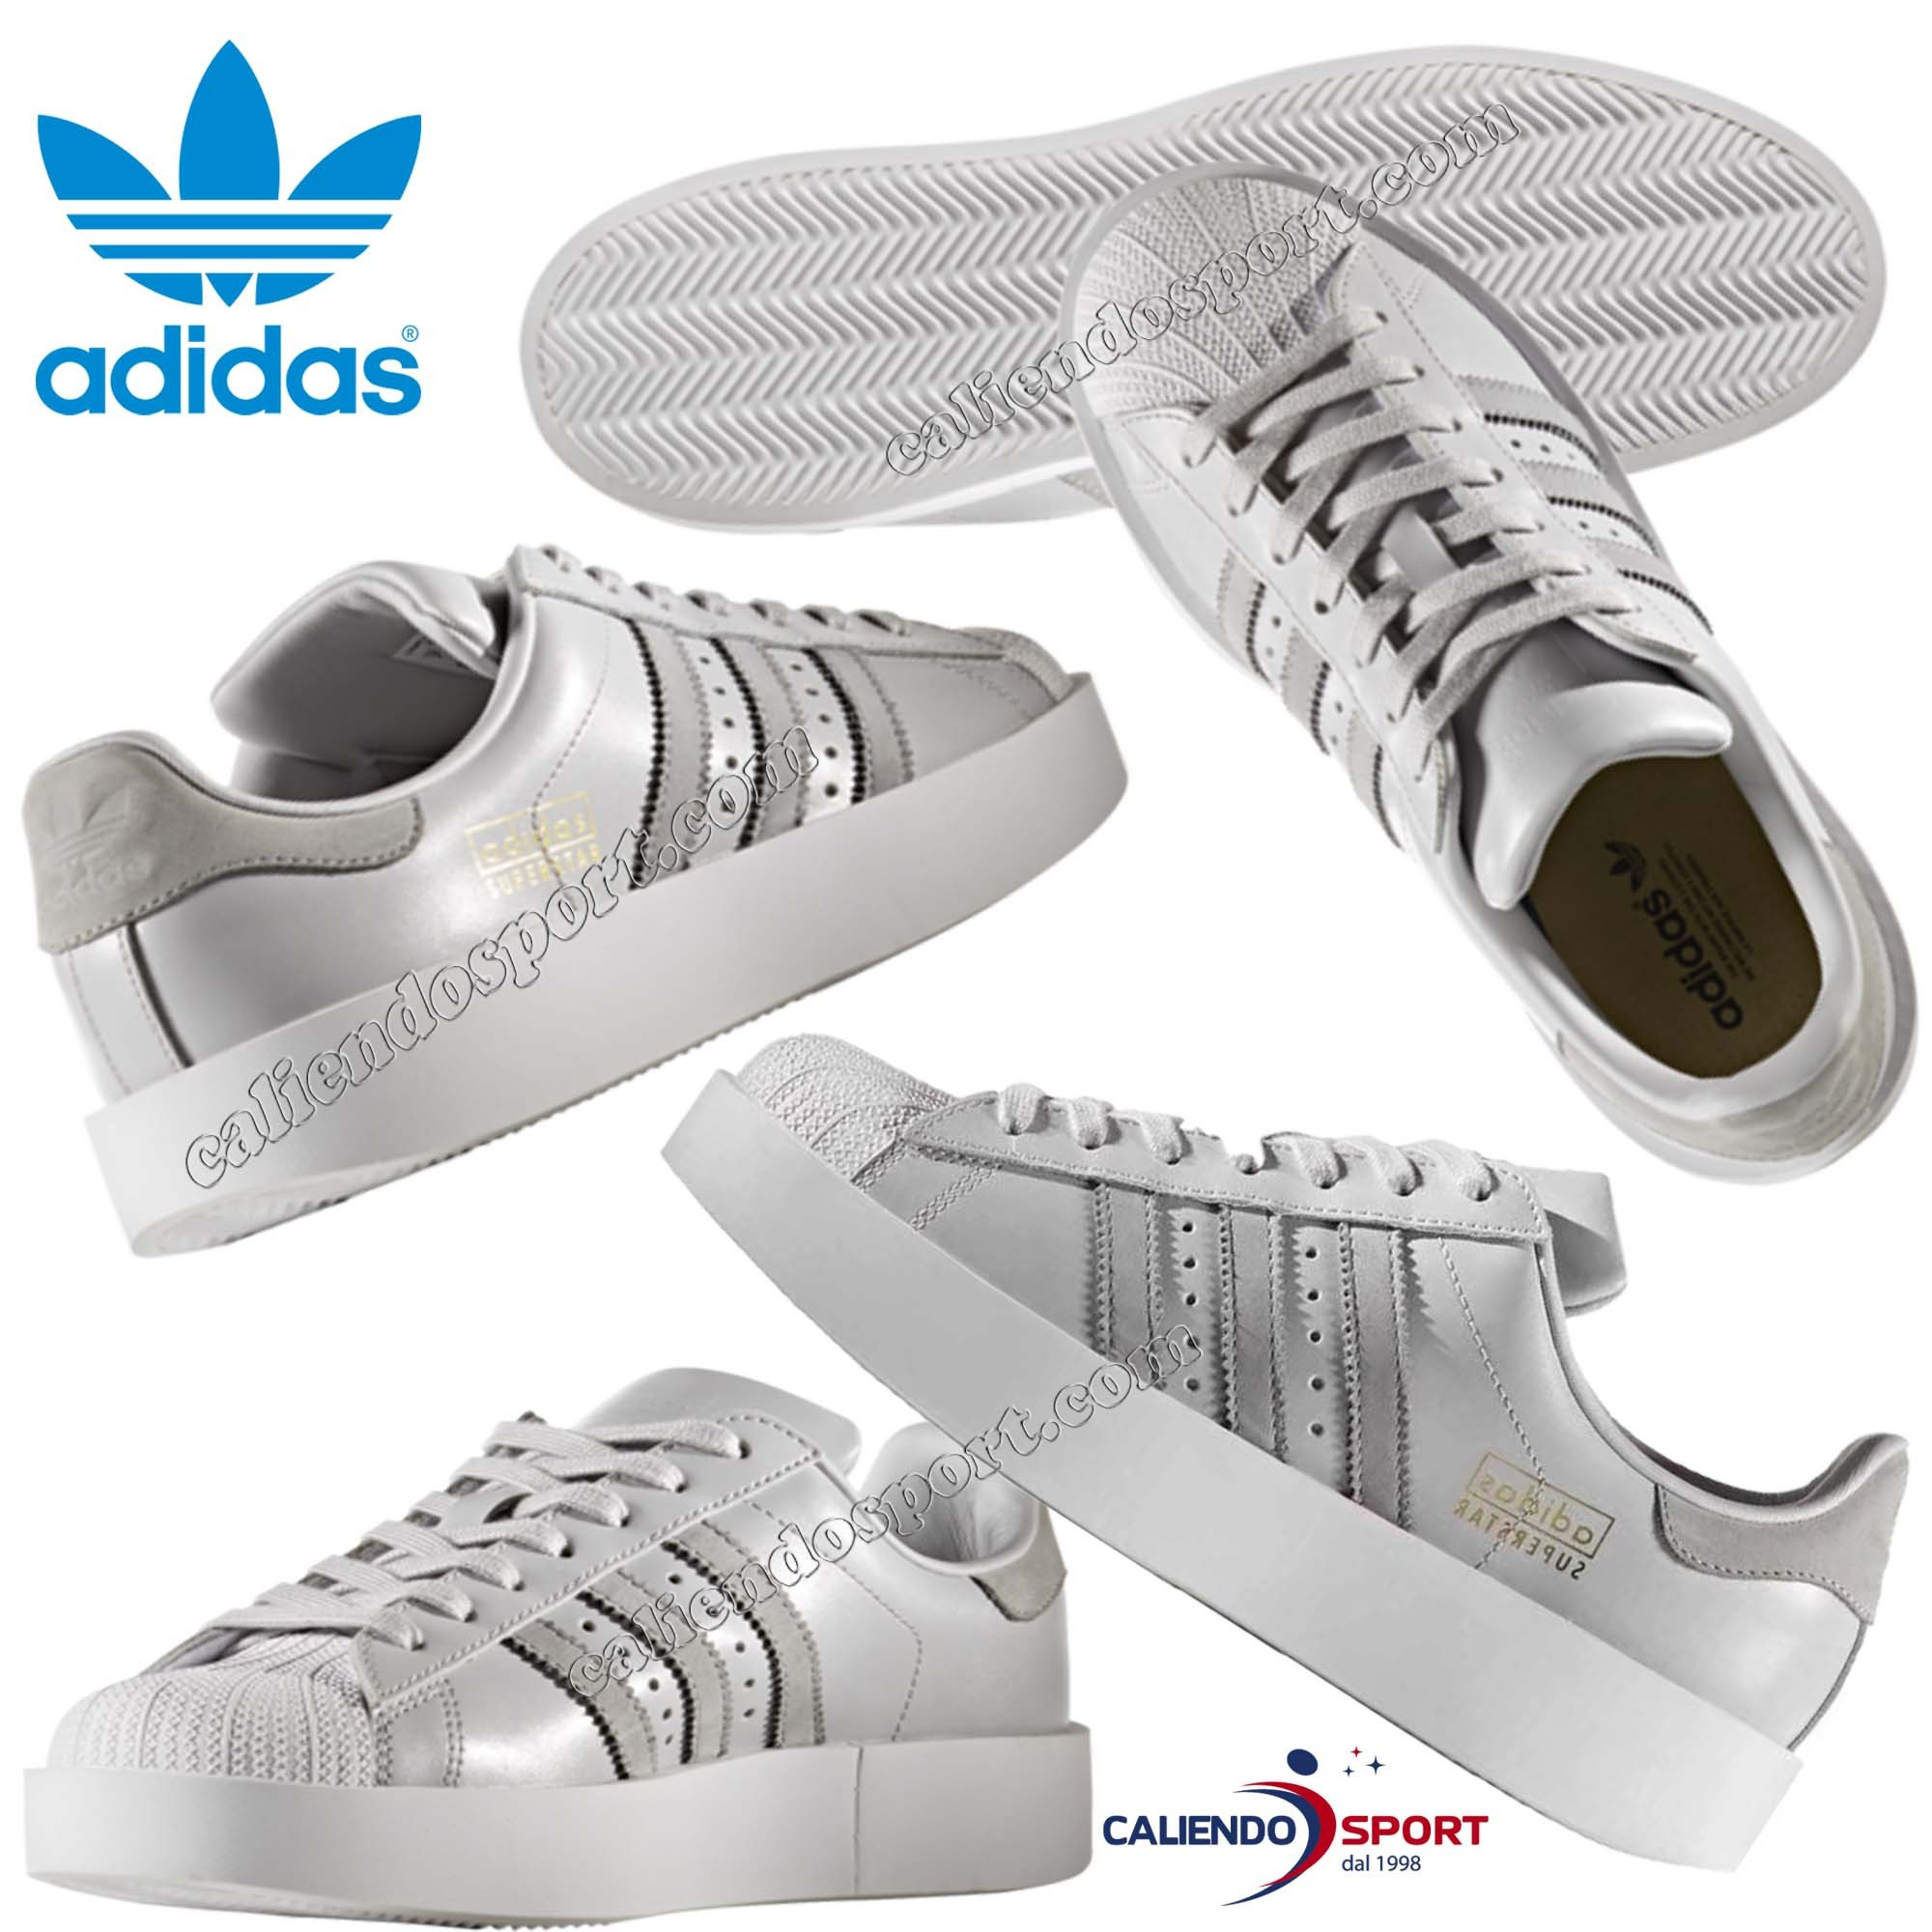 d56ca44877f2 SHOE WOMAN ADIDAS SUPERSTAR CG3694 BOLD PLATFORM GREY WHITE SNEAKER ...